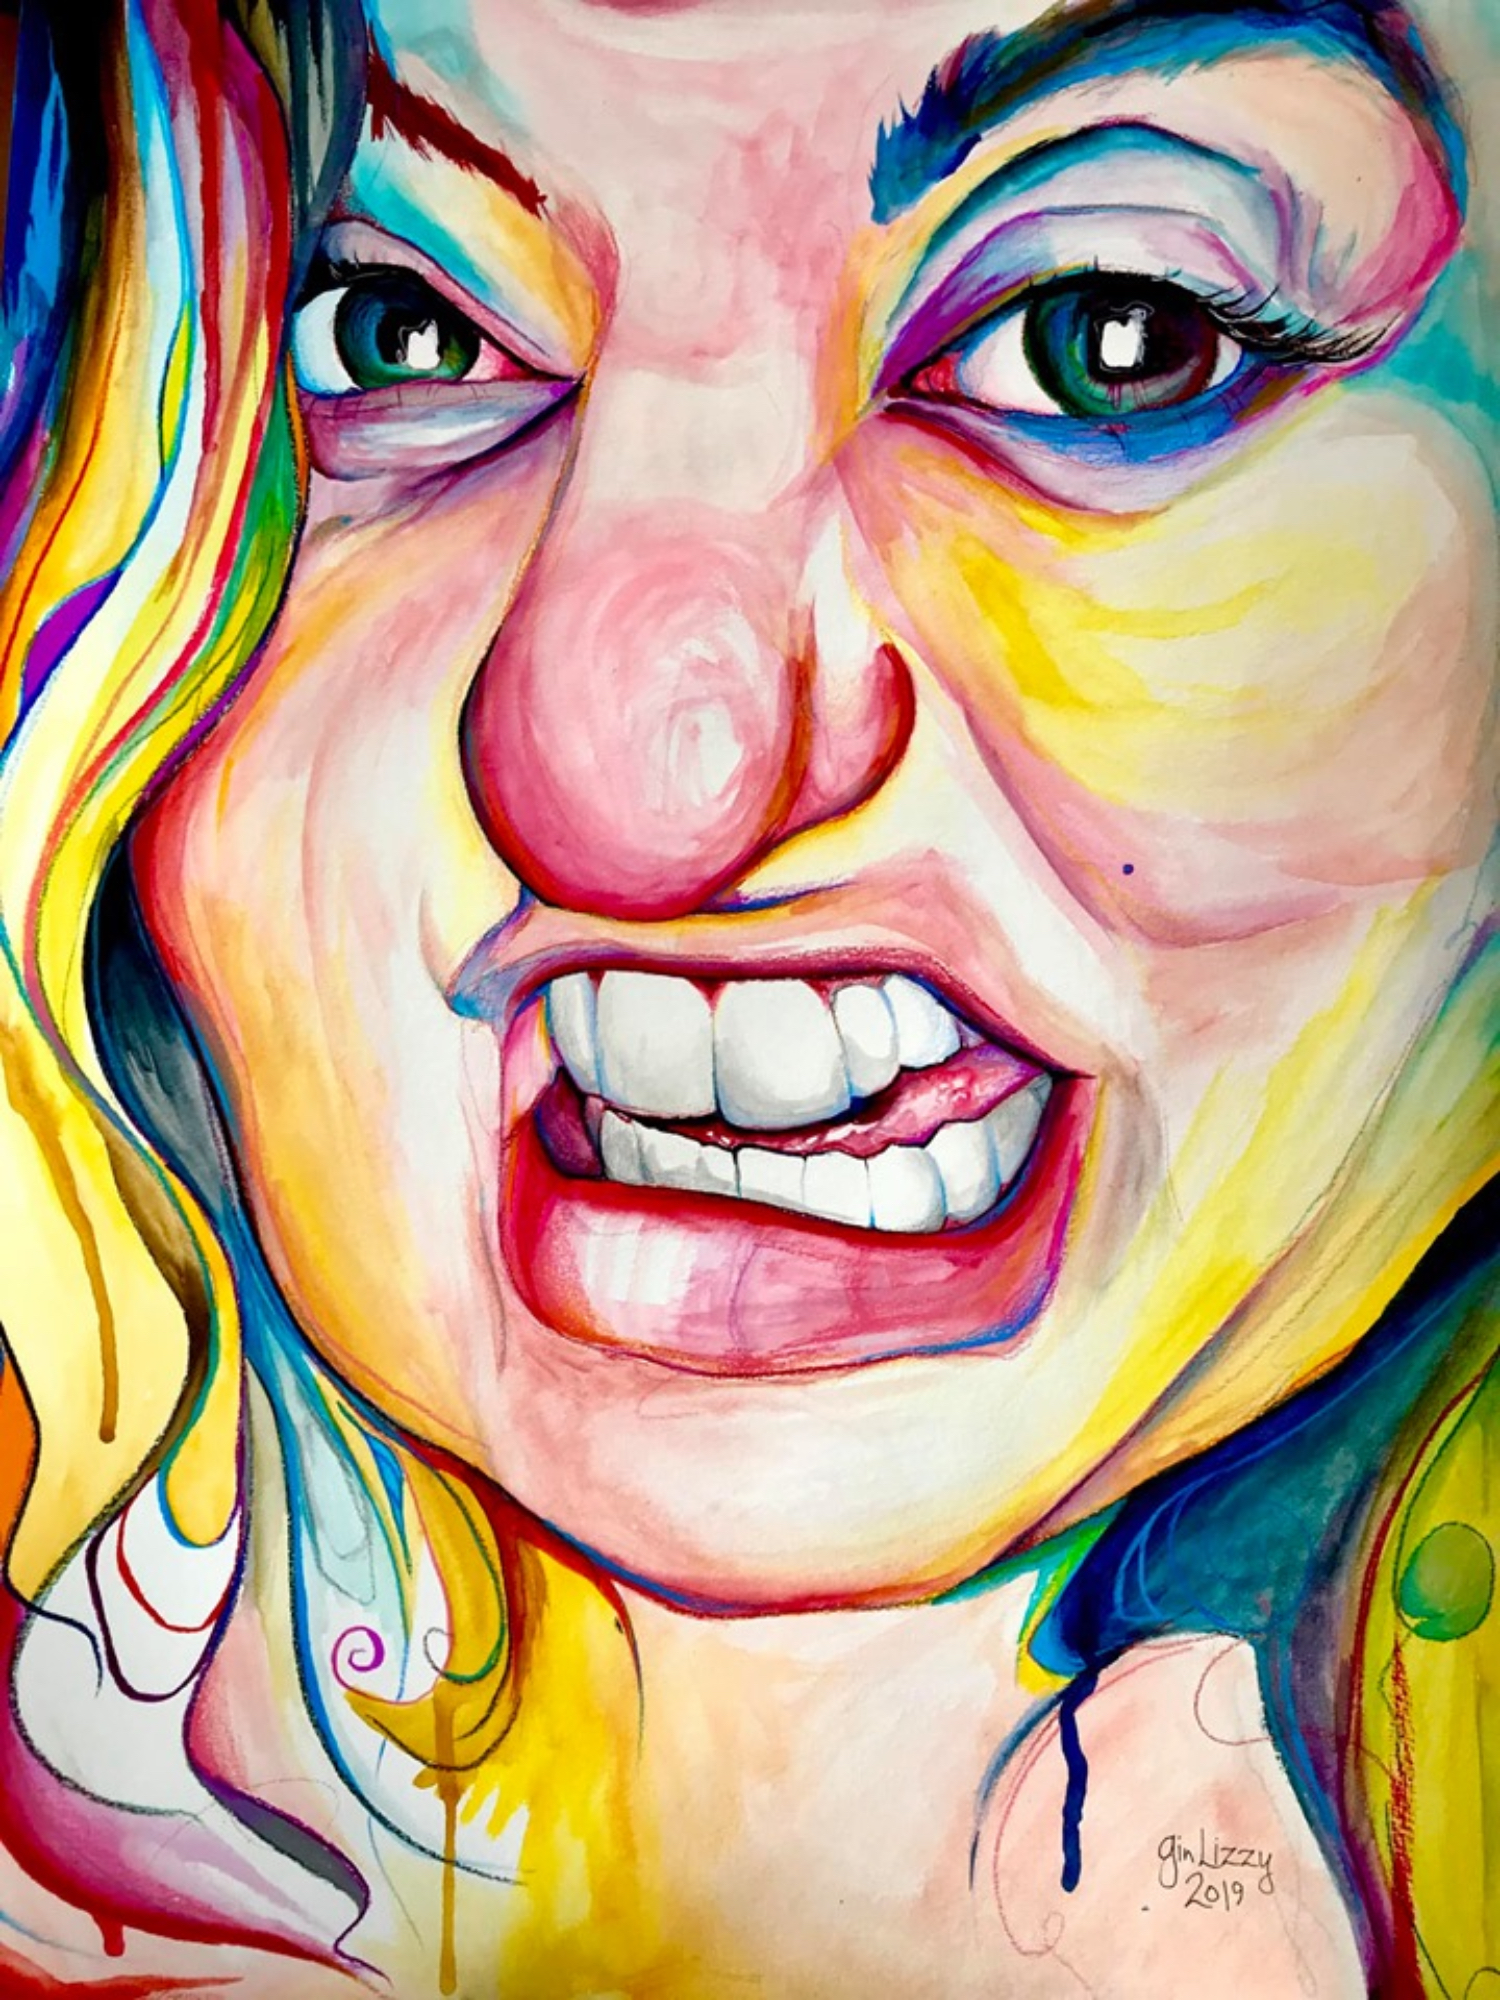 I Paint My Way Through Schizophrenia By Putting Every Emotion In Color.